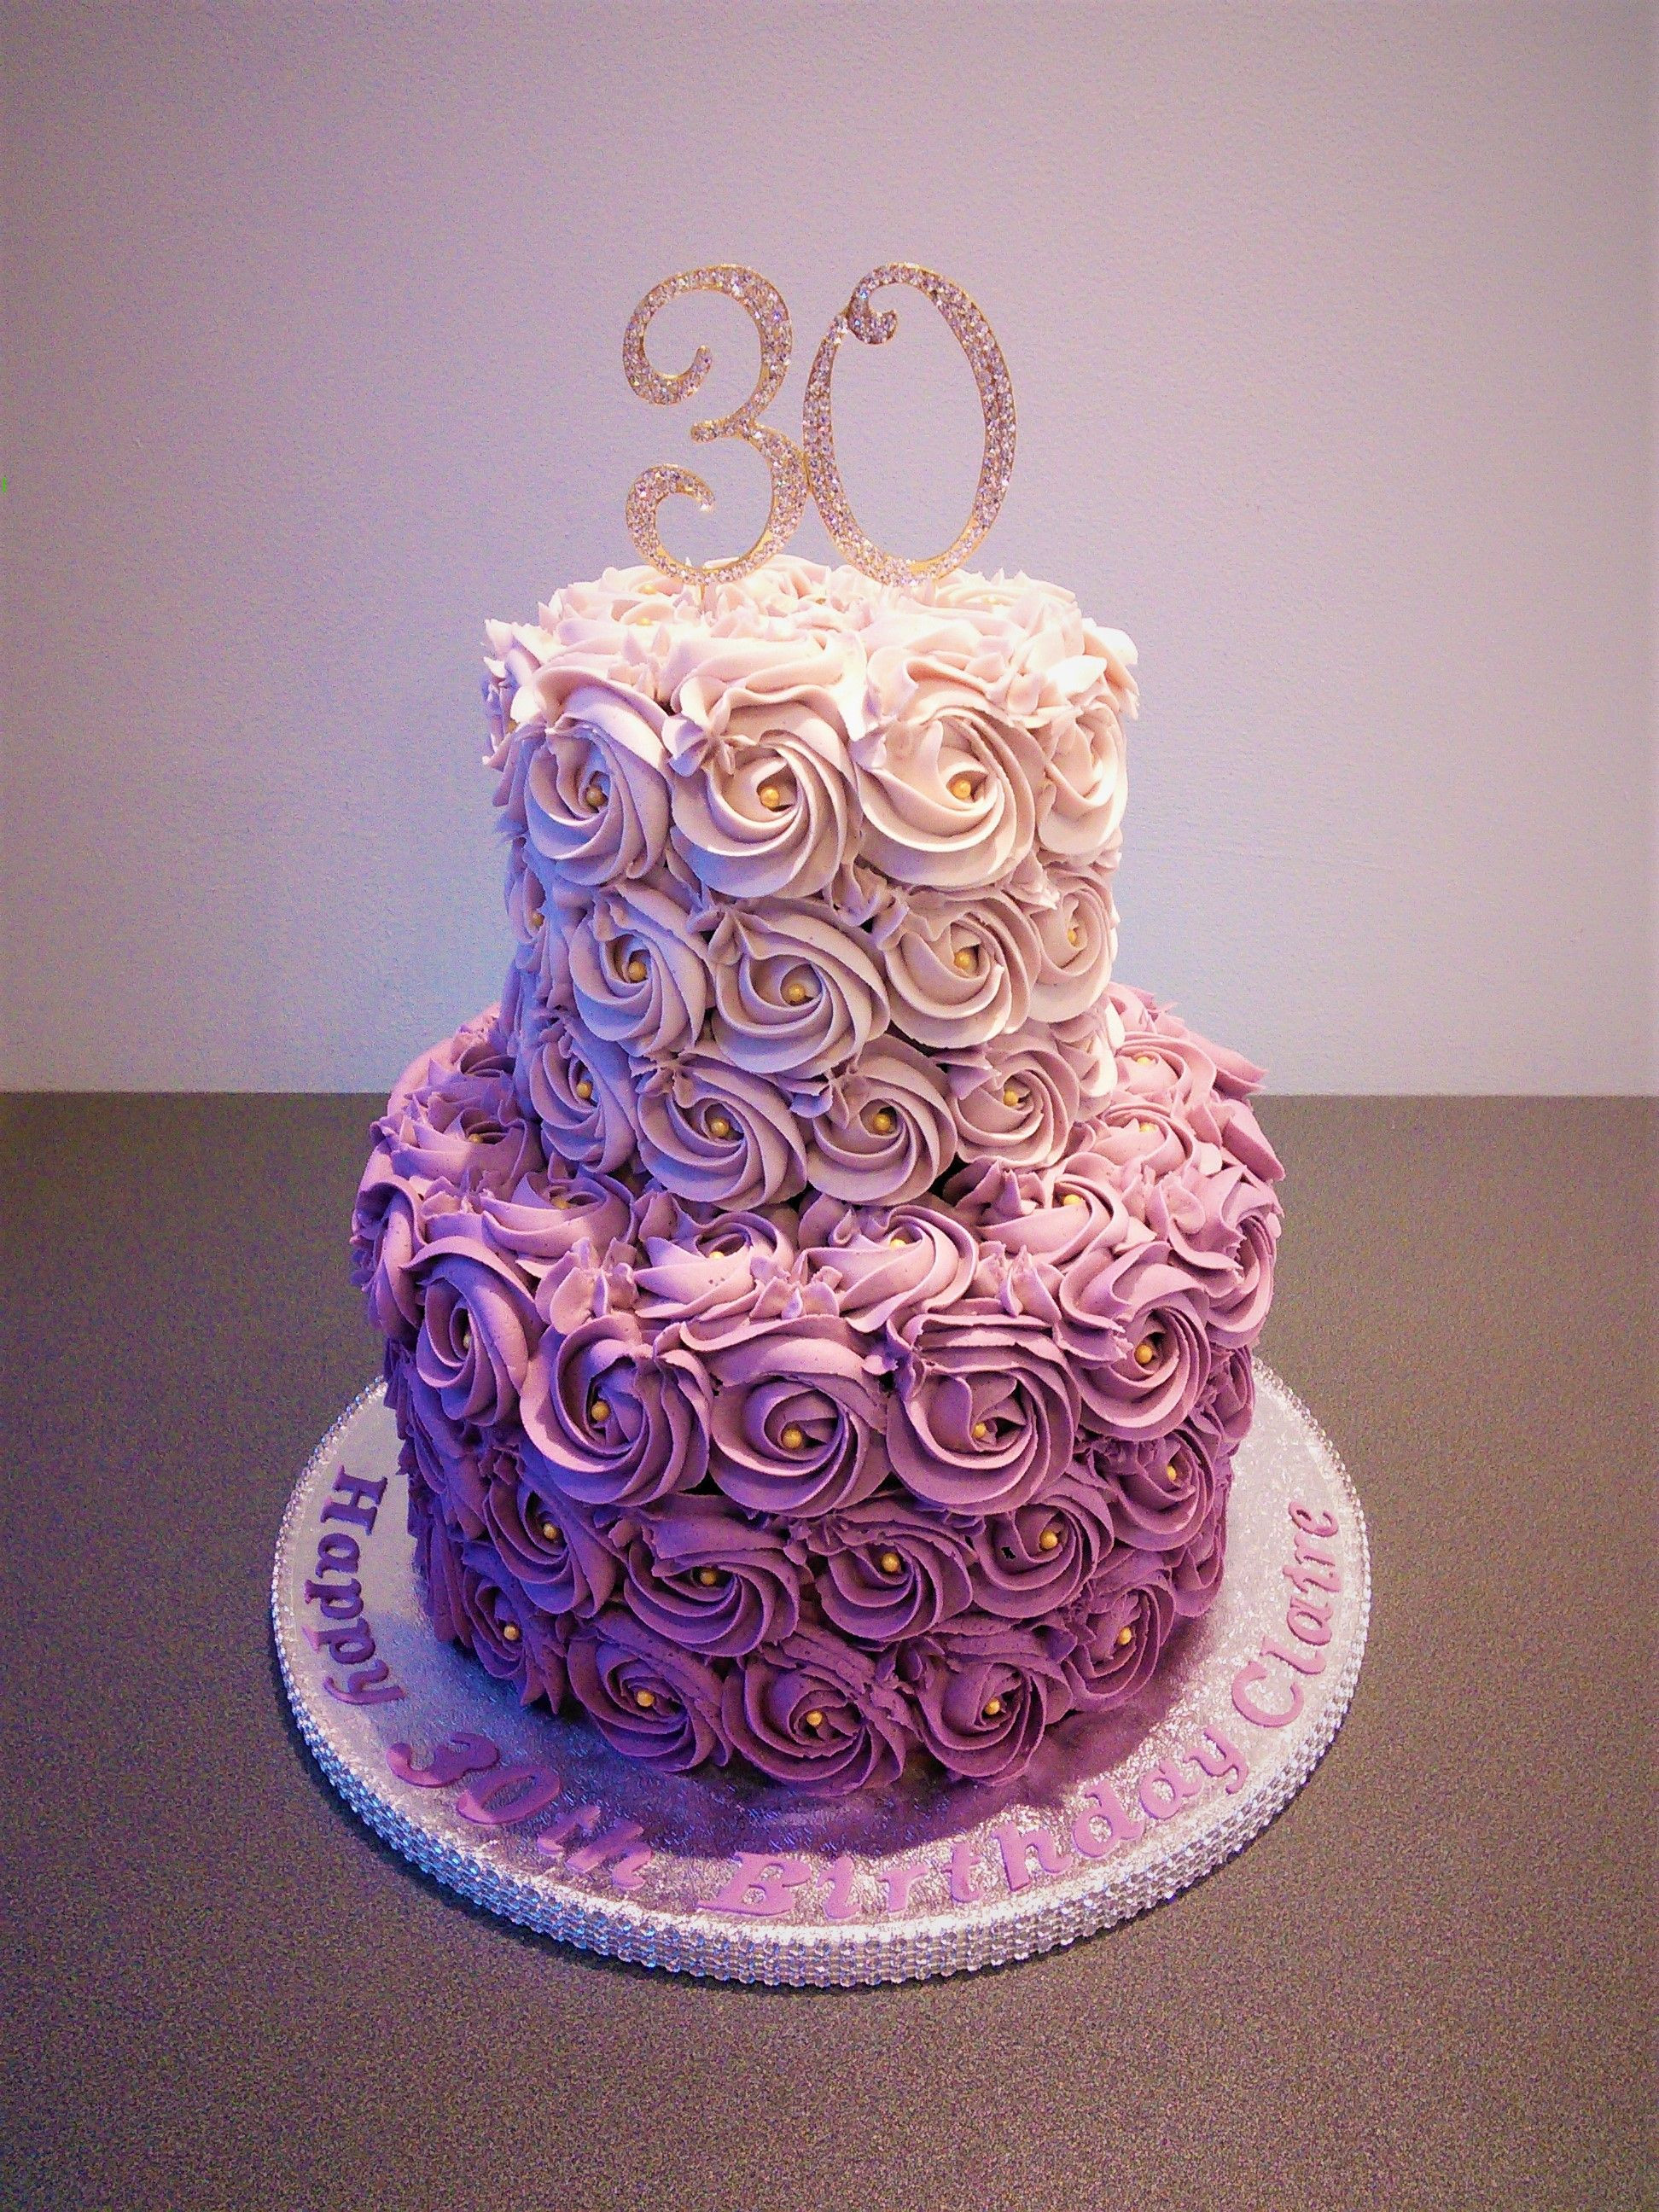 Best ideas about Two Tiered Birthday Cake . Save or Pin purple rose ombre two tier cake Piedmont Now.